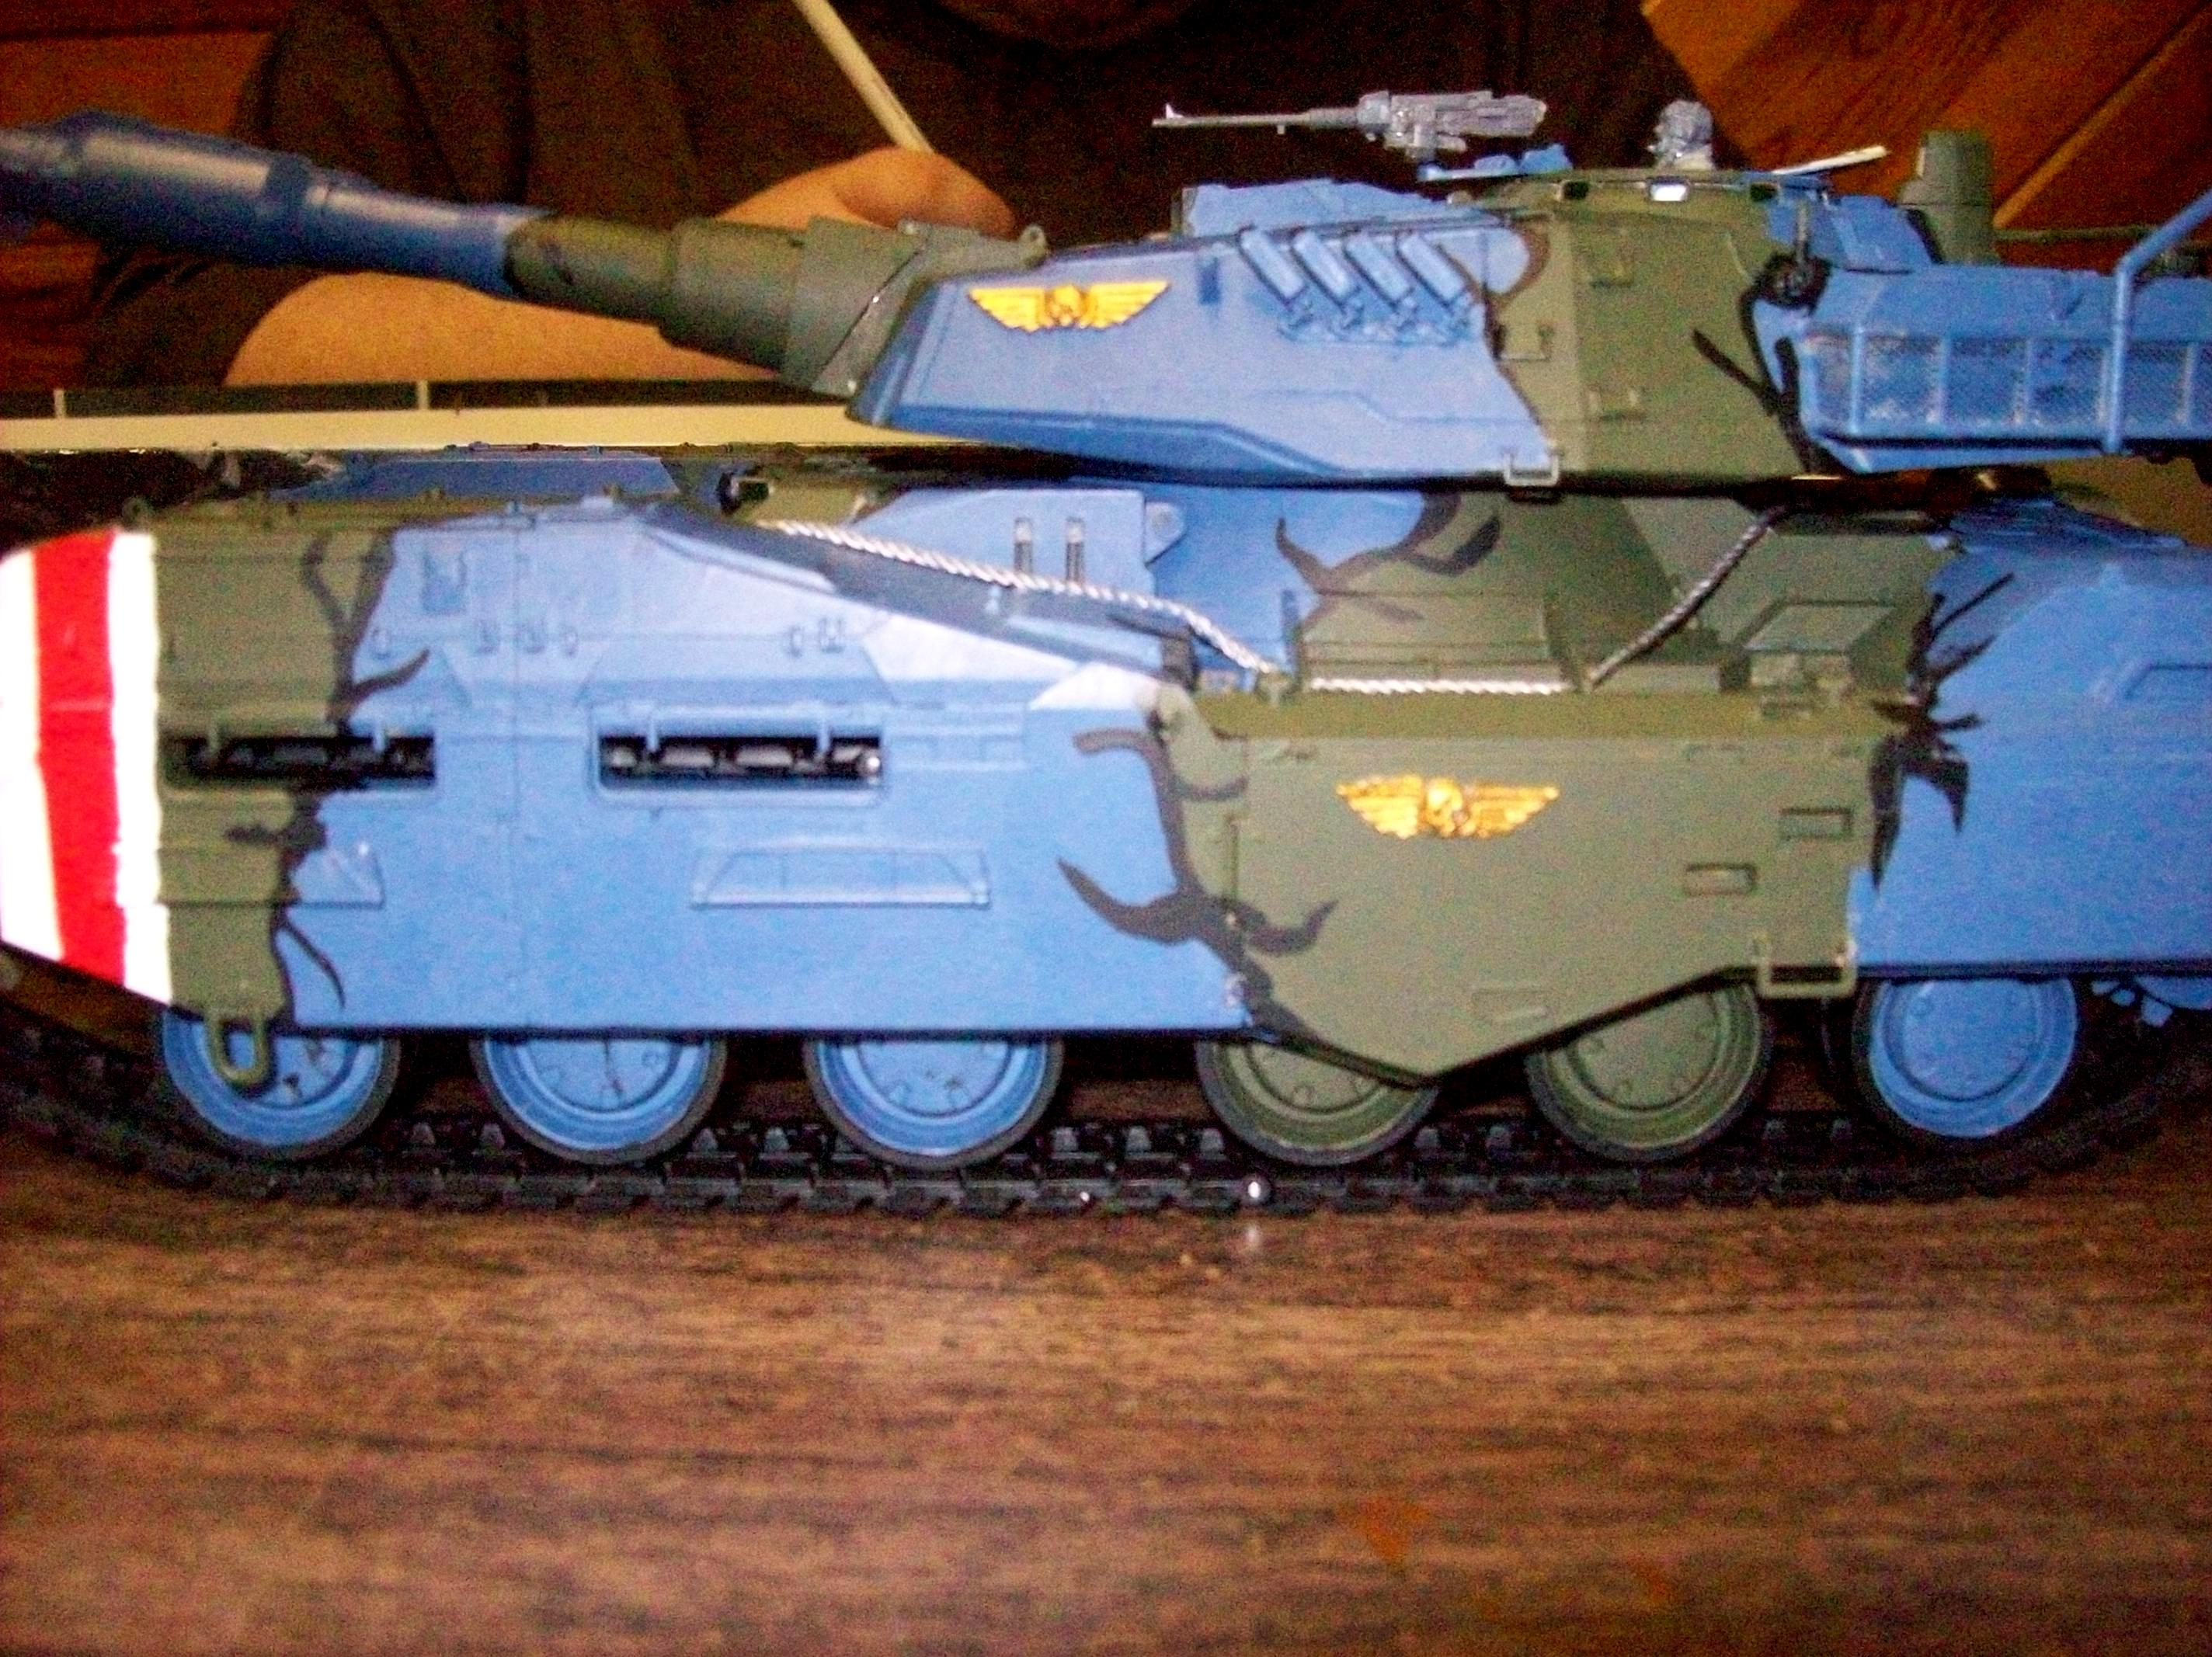 Camouflage, Conversion, Gundam, M61a5, Super-heavy, T-61a5, Tank, Type 61, Type 61a5